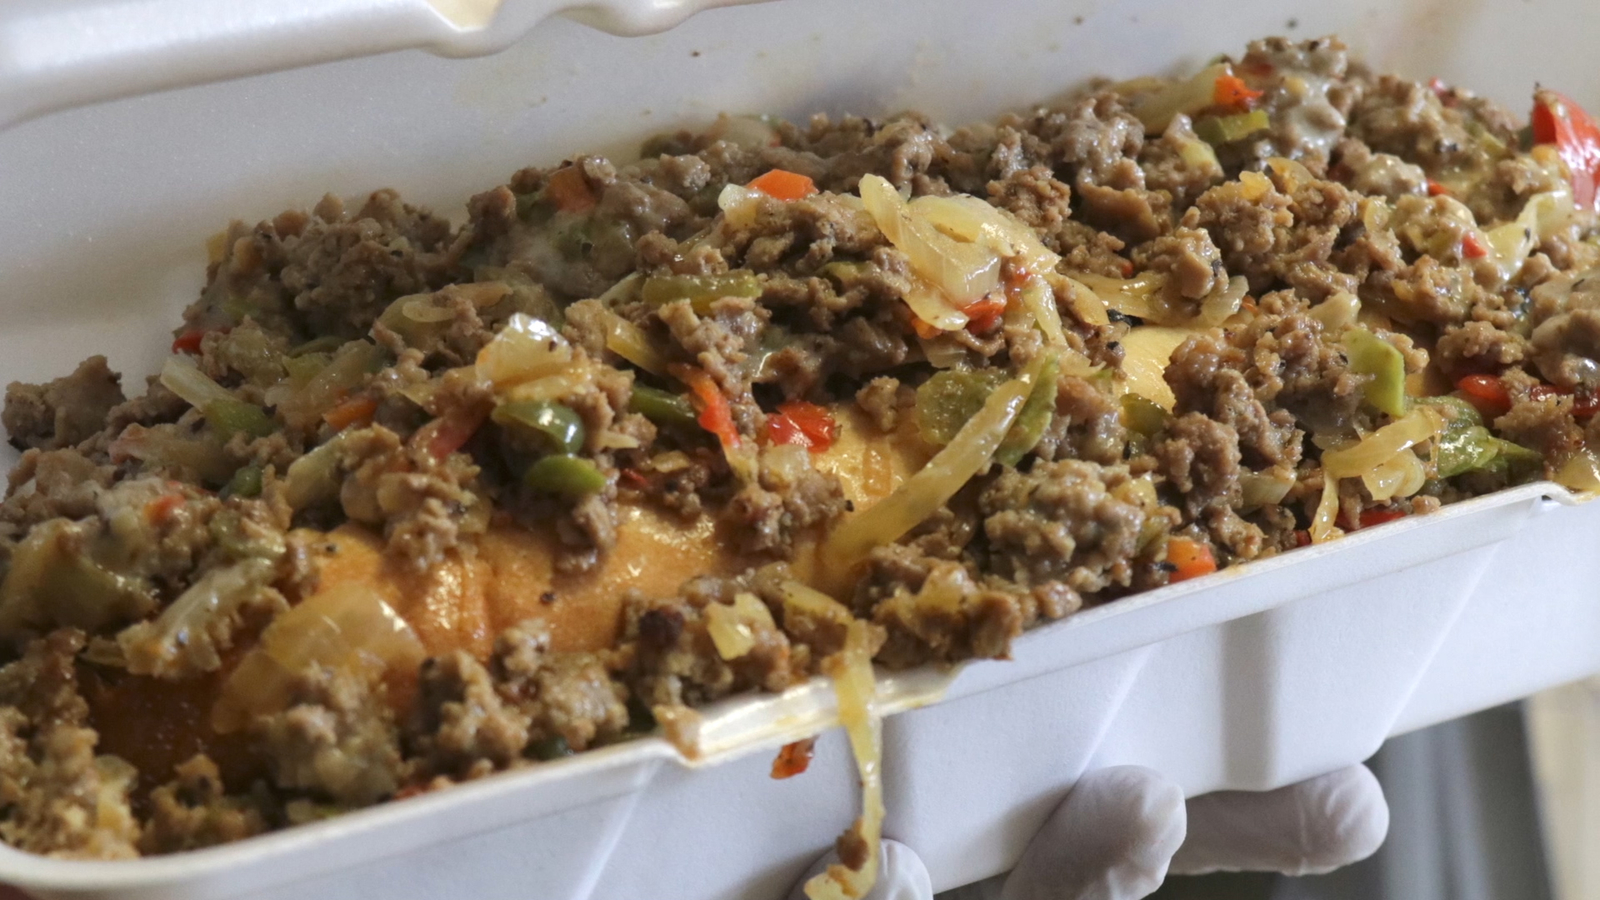 This 3-pound cheesesteak is arguably the best Philly cheesesteak around